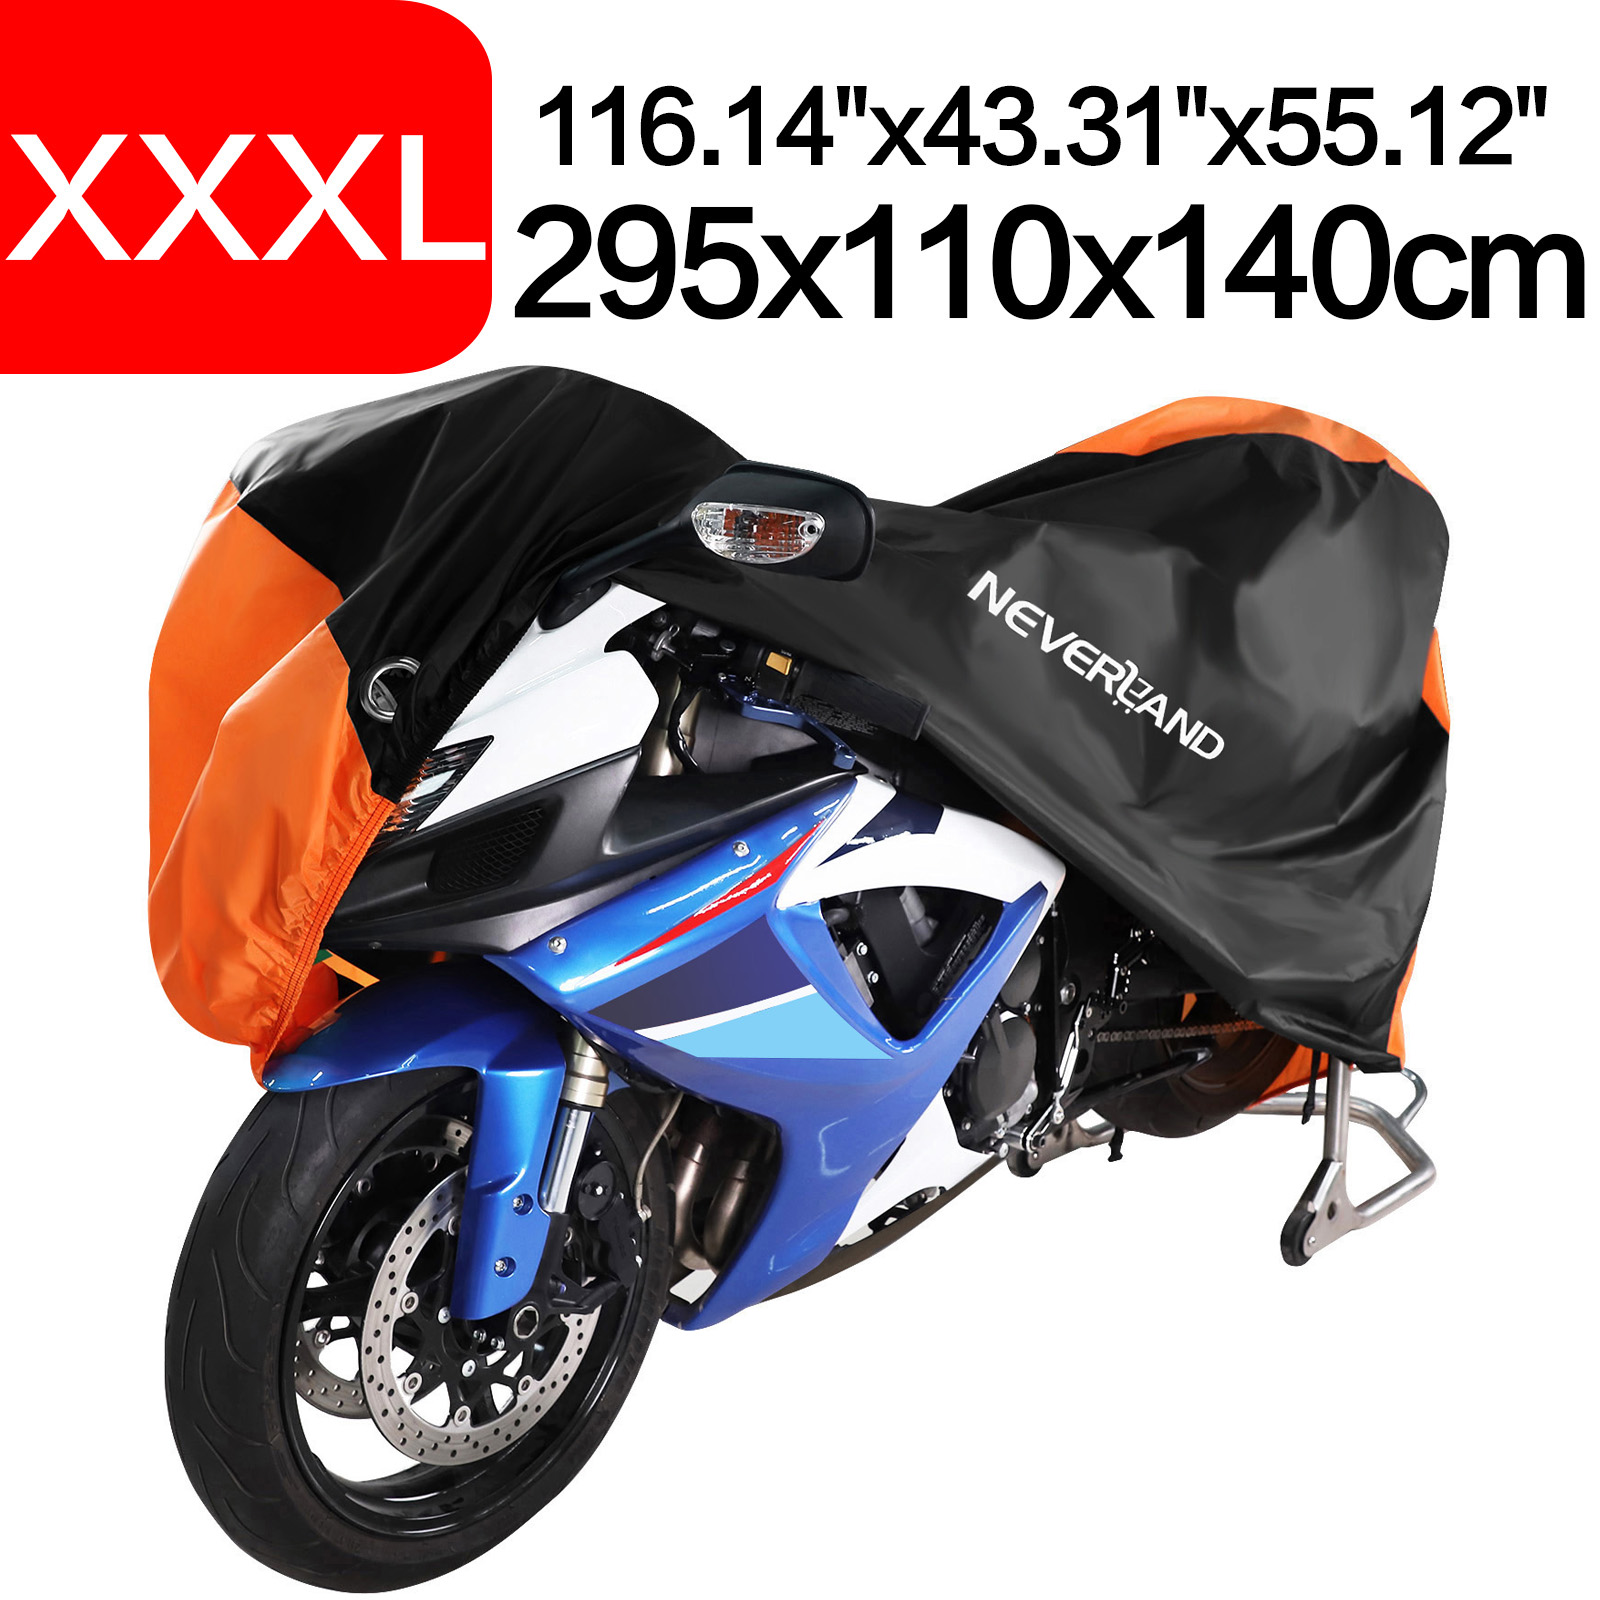 295x110x140cm Orange 190T Waterproof Rain Dust UV Outdoor Indoor Motorcycle Cover Coat For KTM